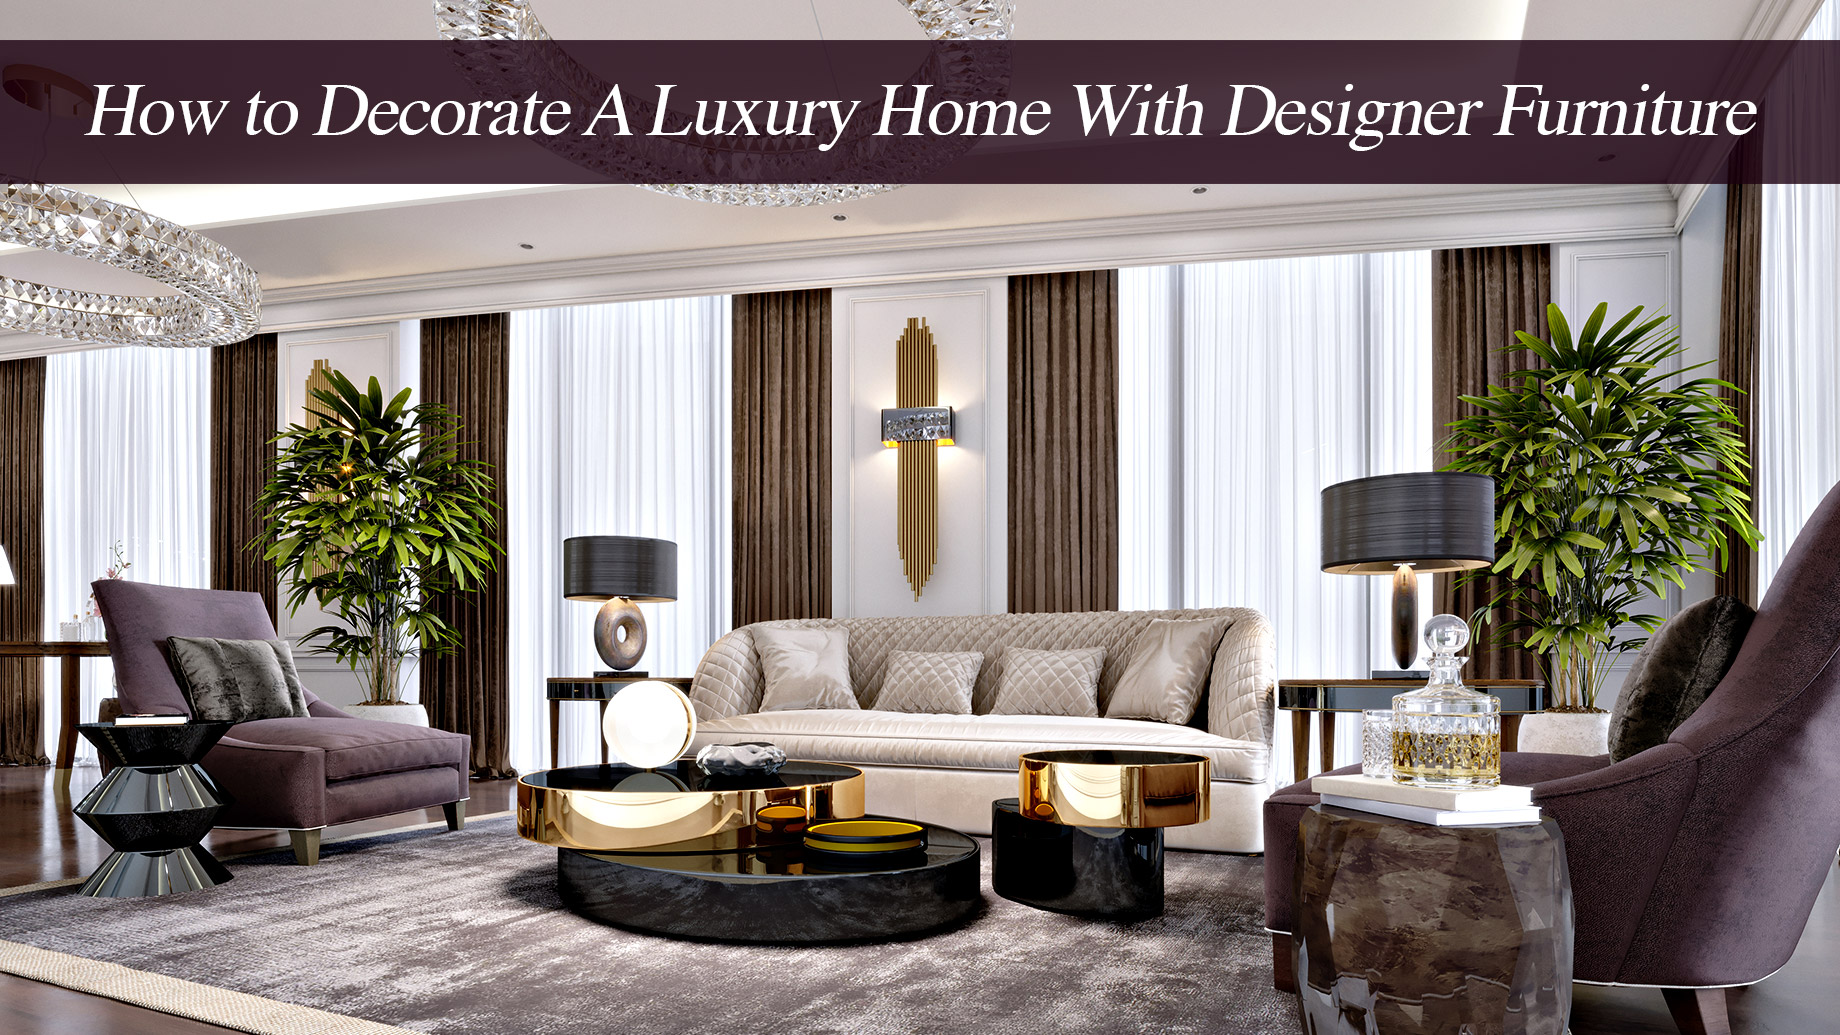 How to Decorate A Luxury Home With Designer Furniture